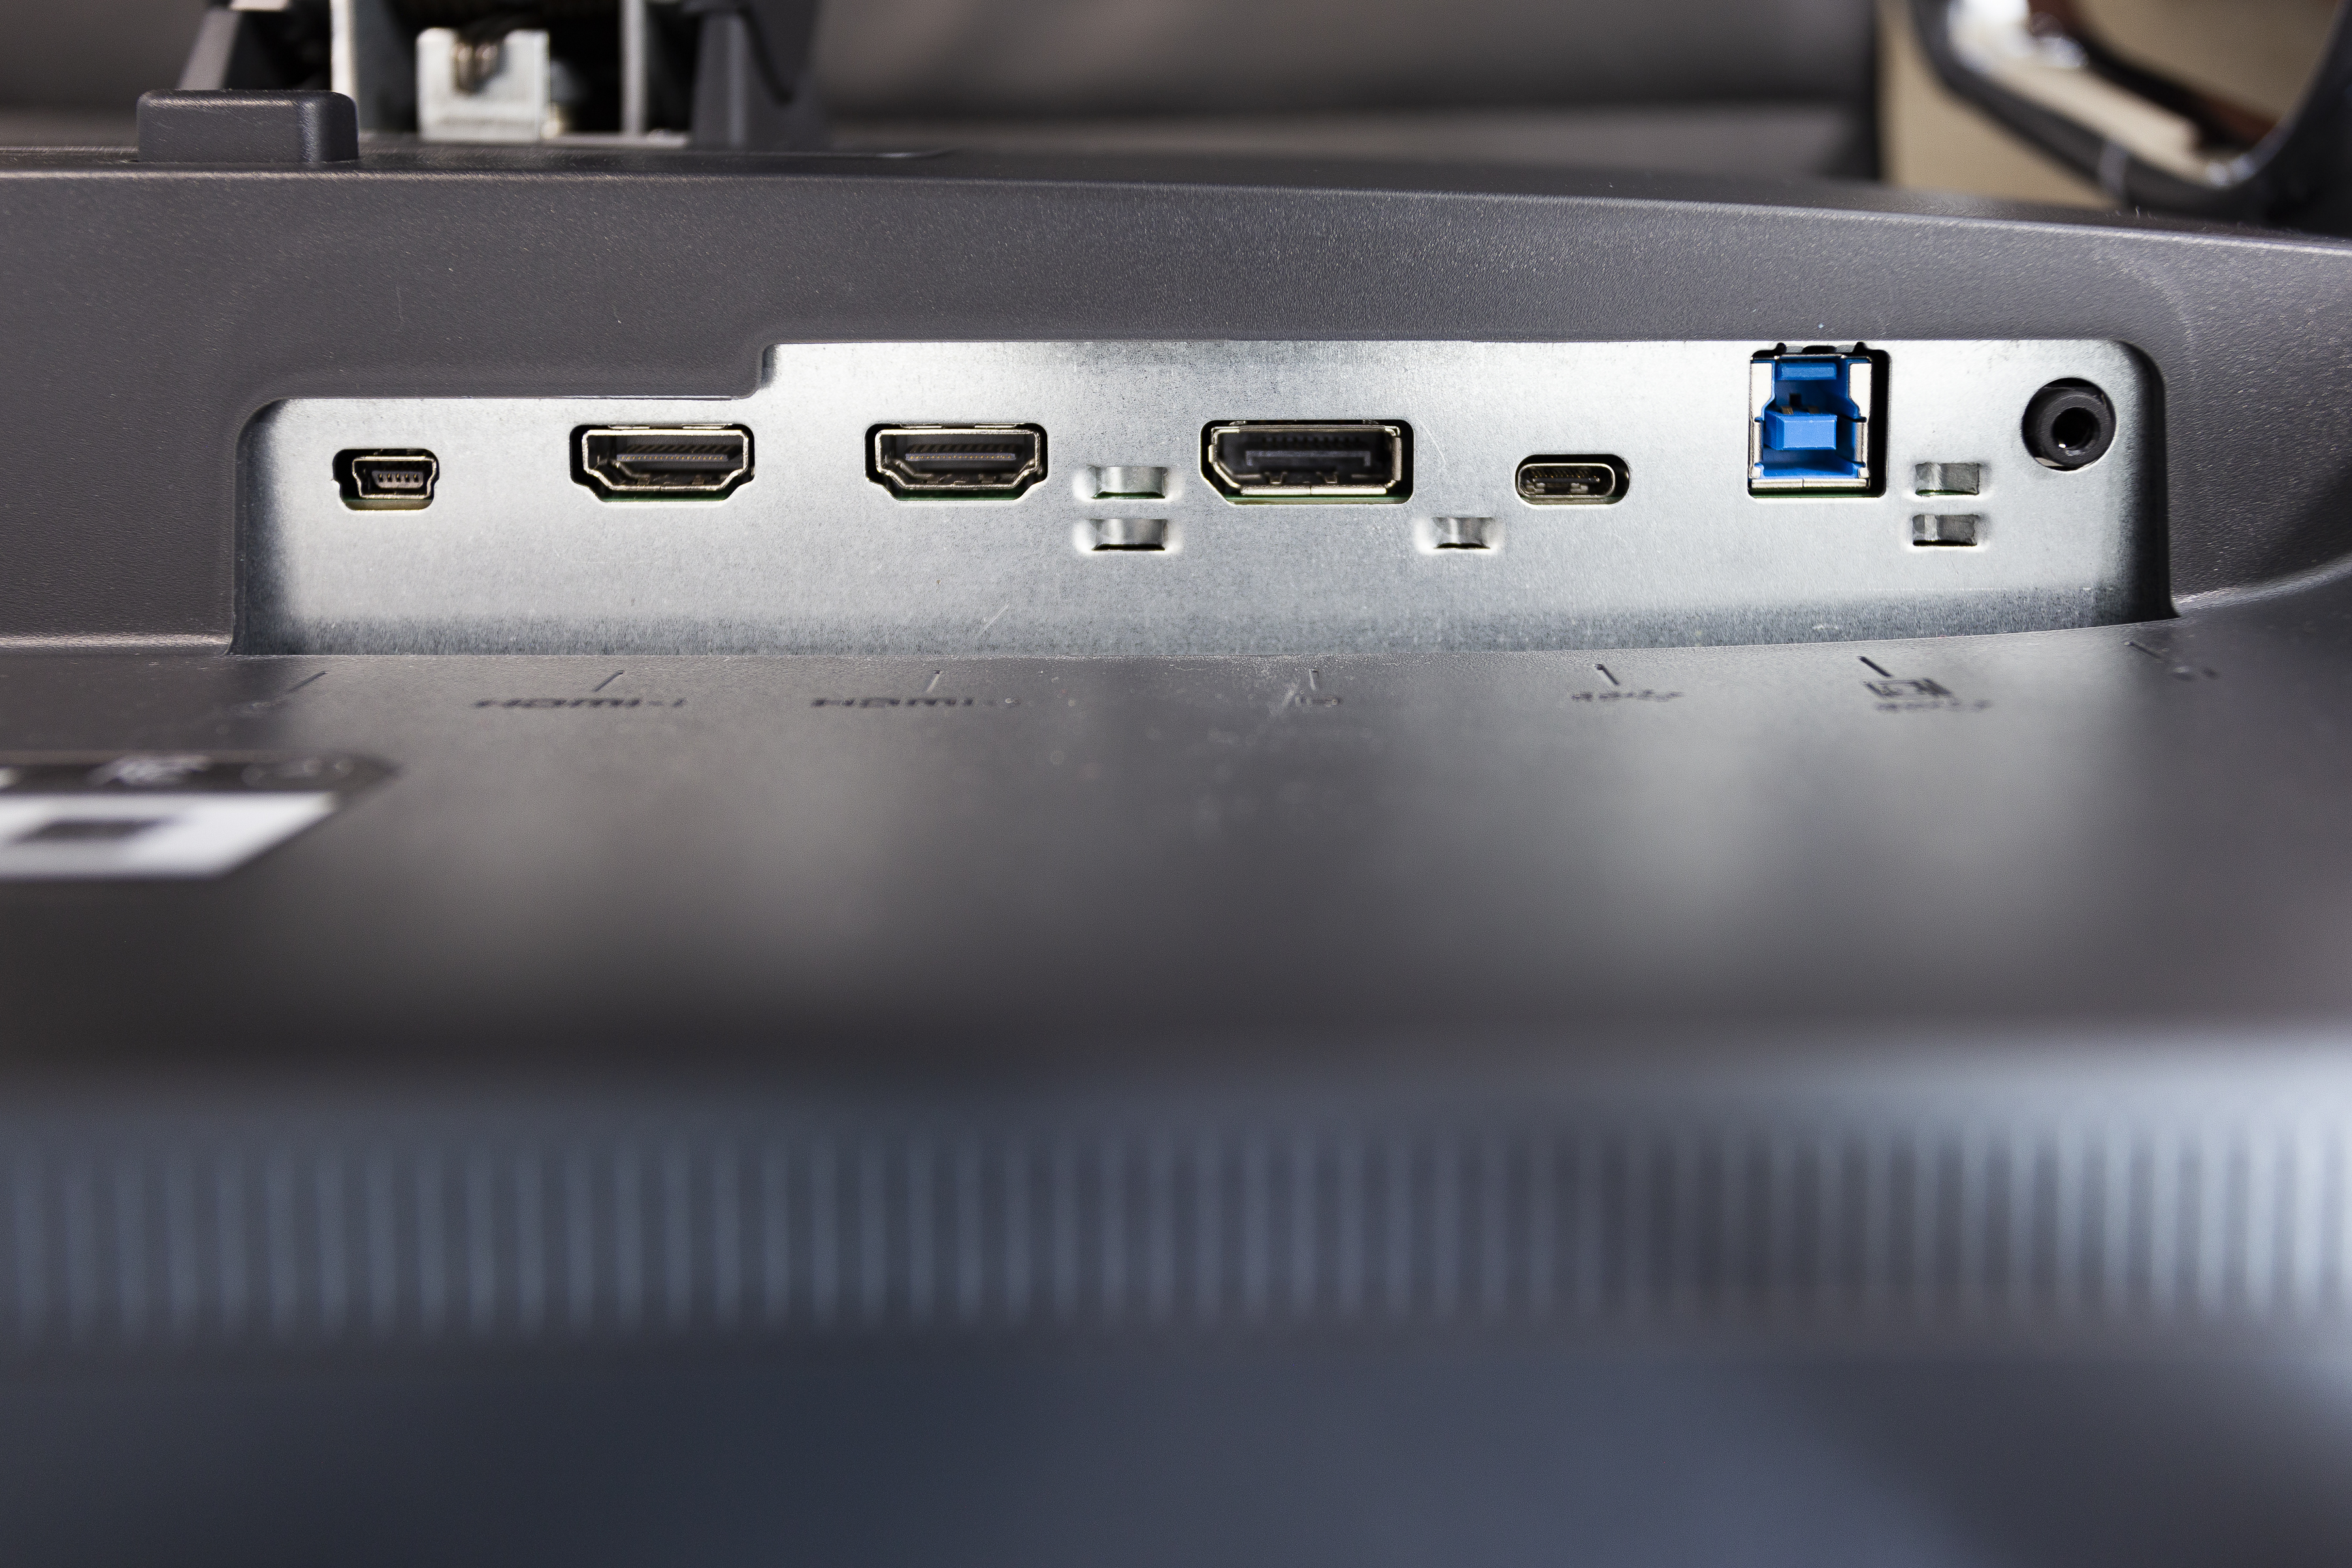 benq sw271 connections